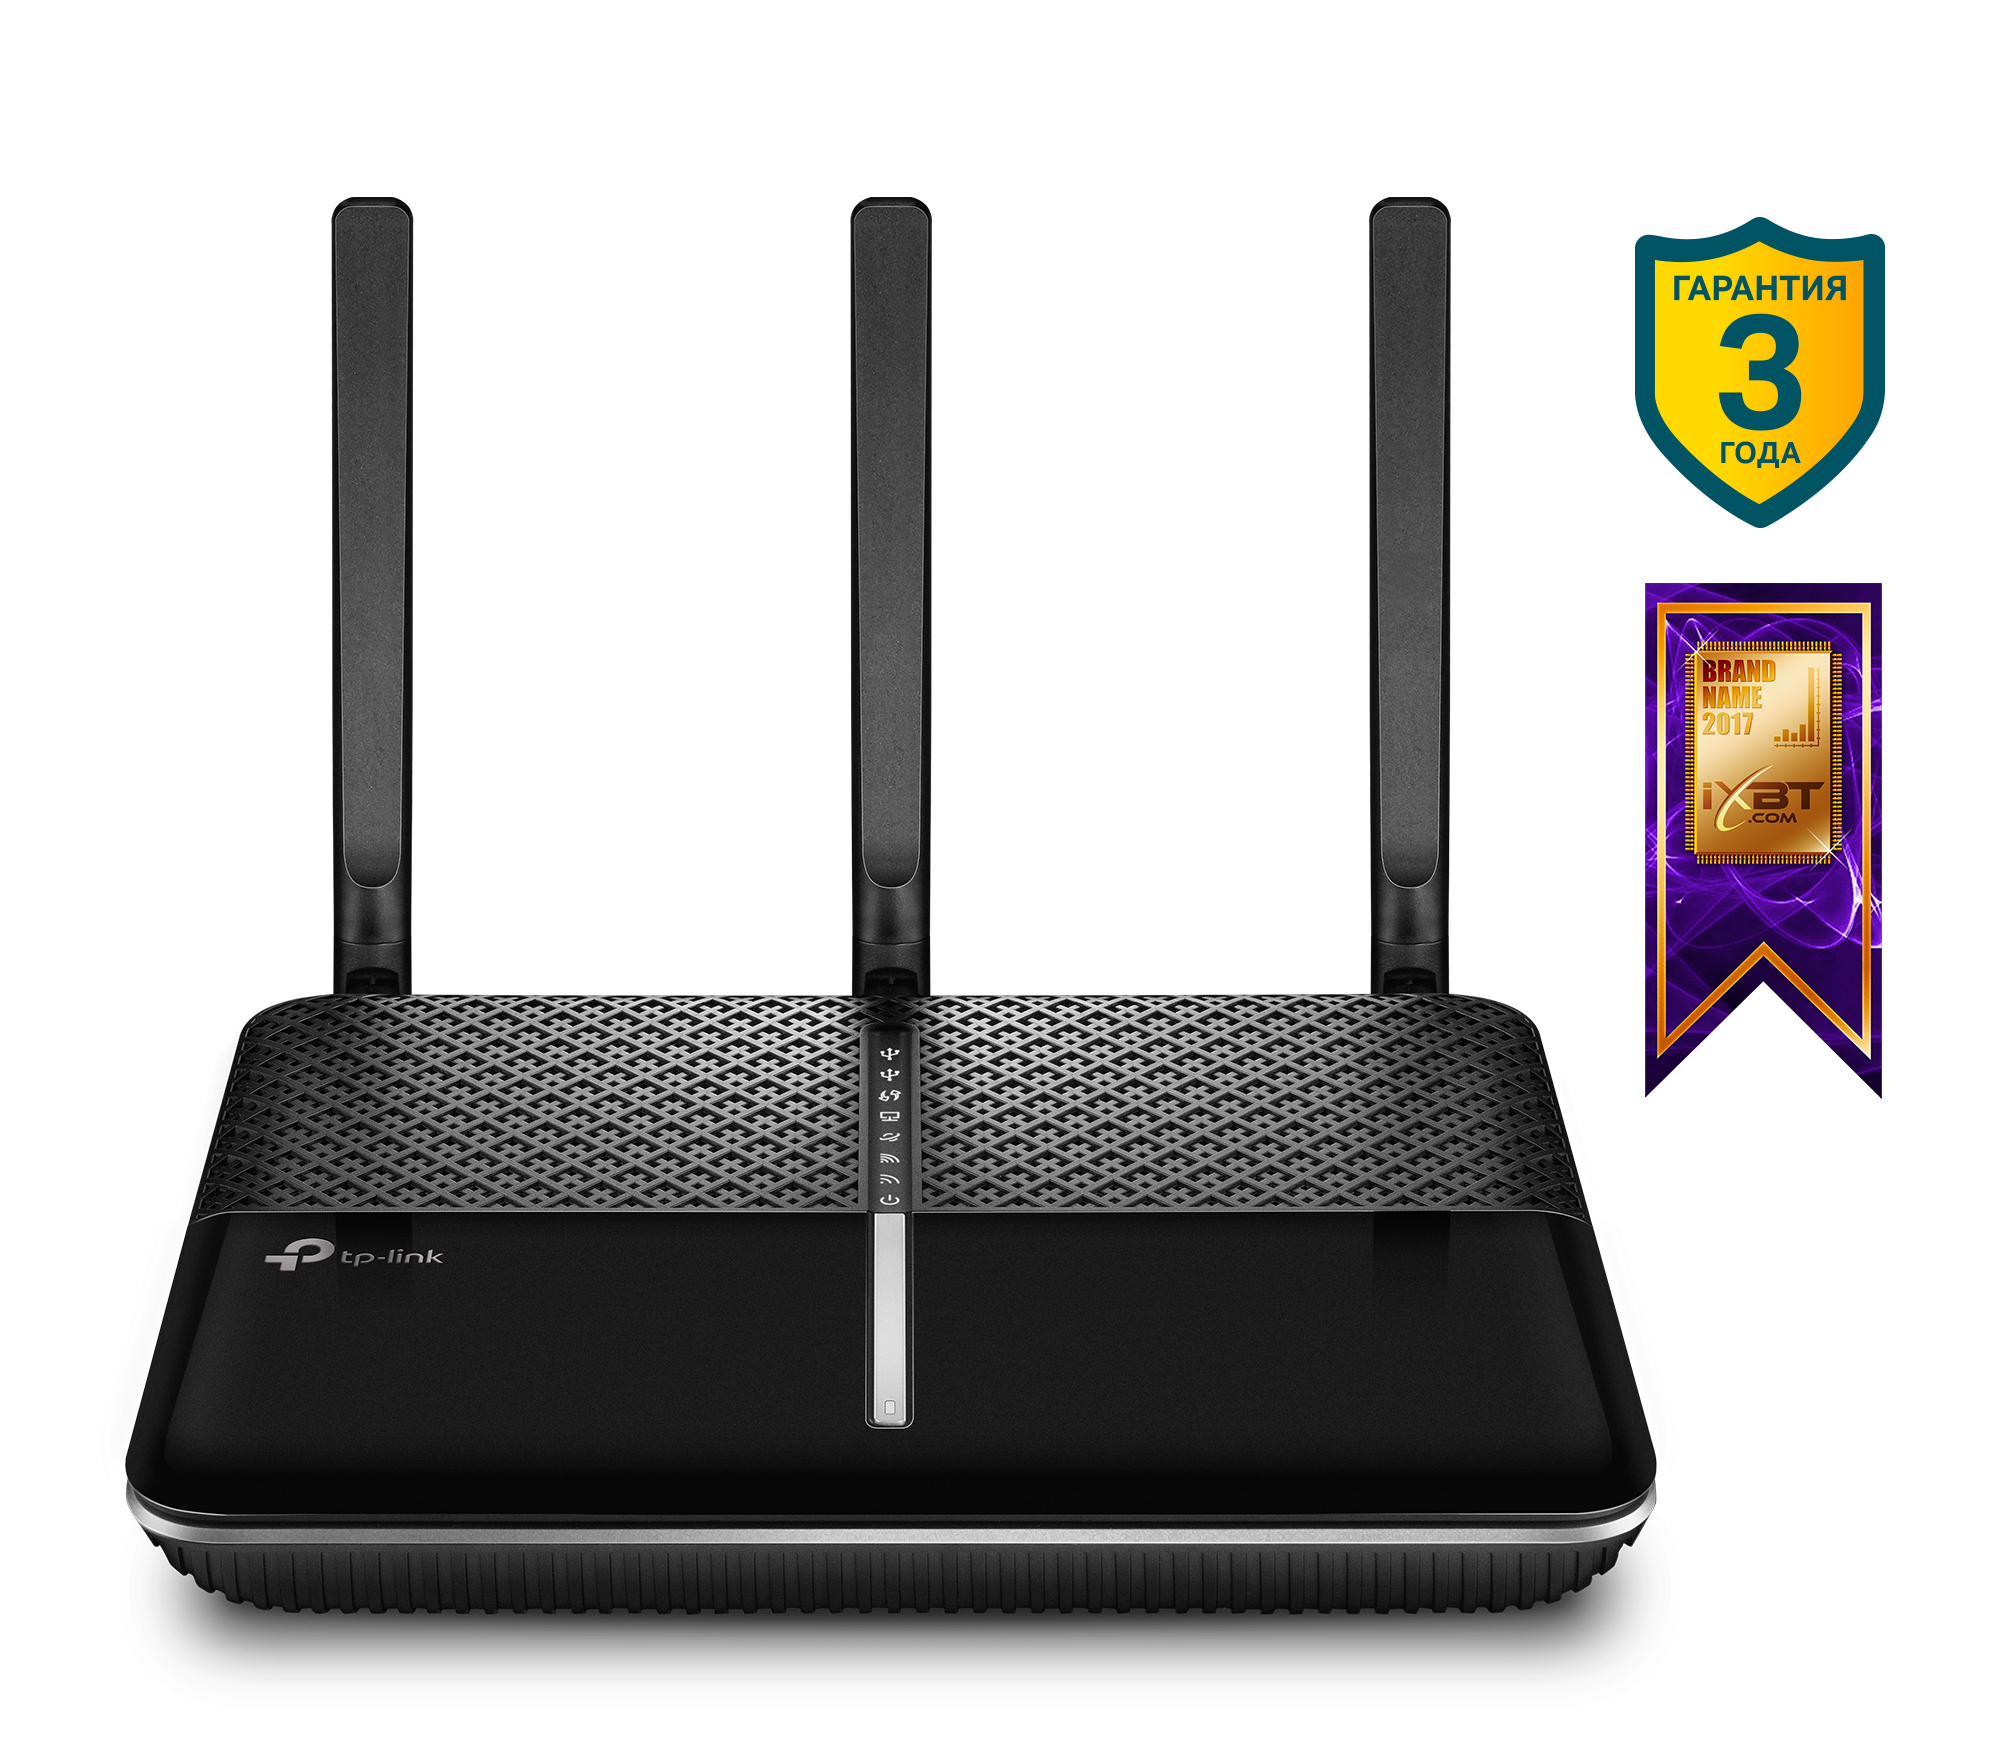 Маршрутизатор TP-LINK Archer C2300 AC2300 MU-MIMO Wi-Fi гигабитный роутер wi fi роутер tp link archer vr400